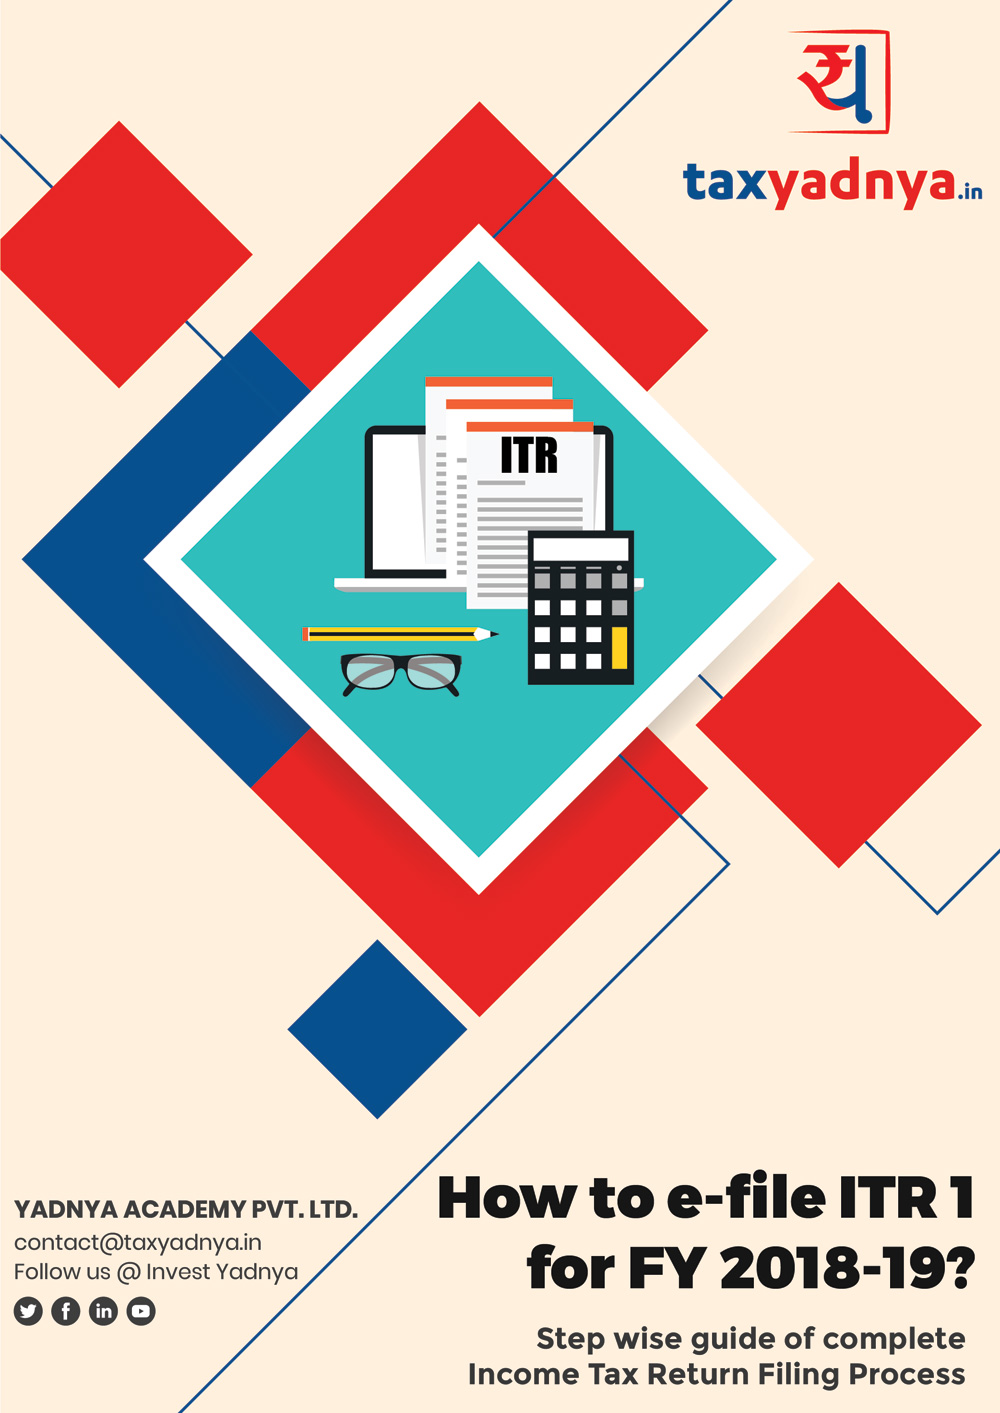 Steps to e-file ITR1 eBook give detail steps on how to file your Income Tax return on your own using ITR1 form. This book contains multiple screenshot of Income Tax efiling portal through which you can file your ITR on your own for Free. Book also contains steps on how to pay your pending Income Tax through Income Tax website. This ebook is based on FY 2018-19 or AY 2019-20 ITR1 form.